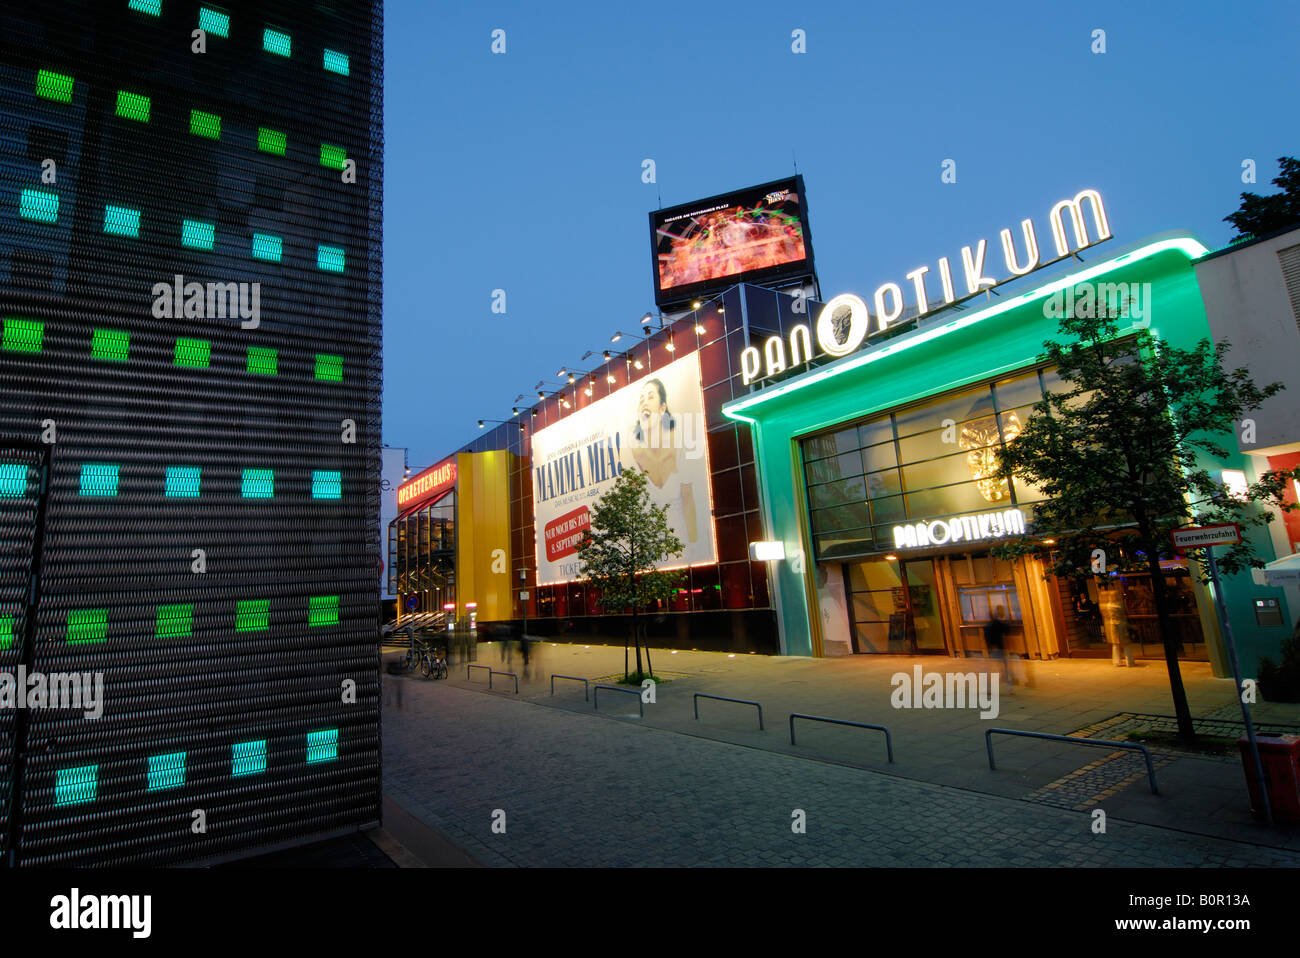 The musical theatre Operettenhaus and the wax works at the Reeperbahn in Hamburg, Germany - Stock Image